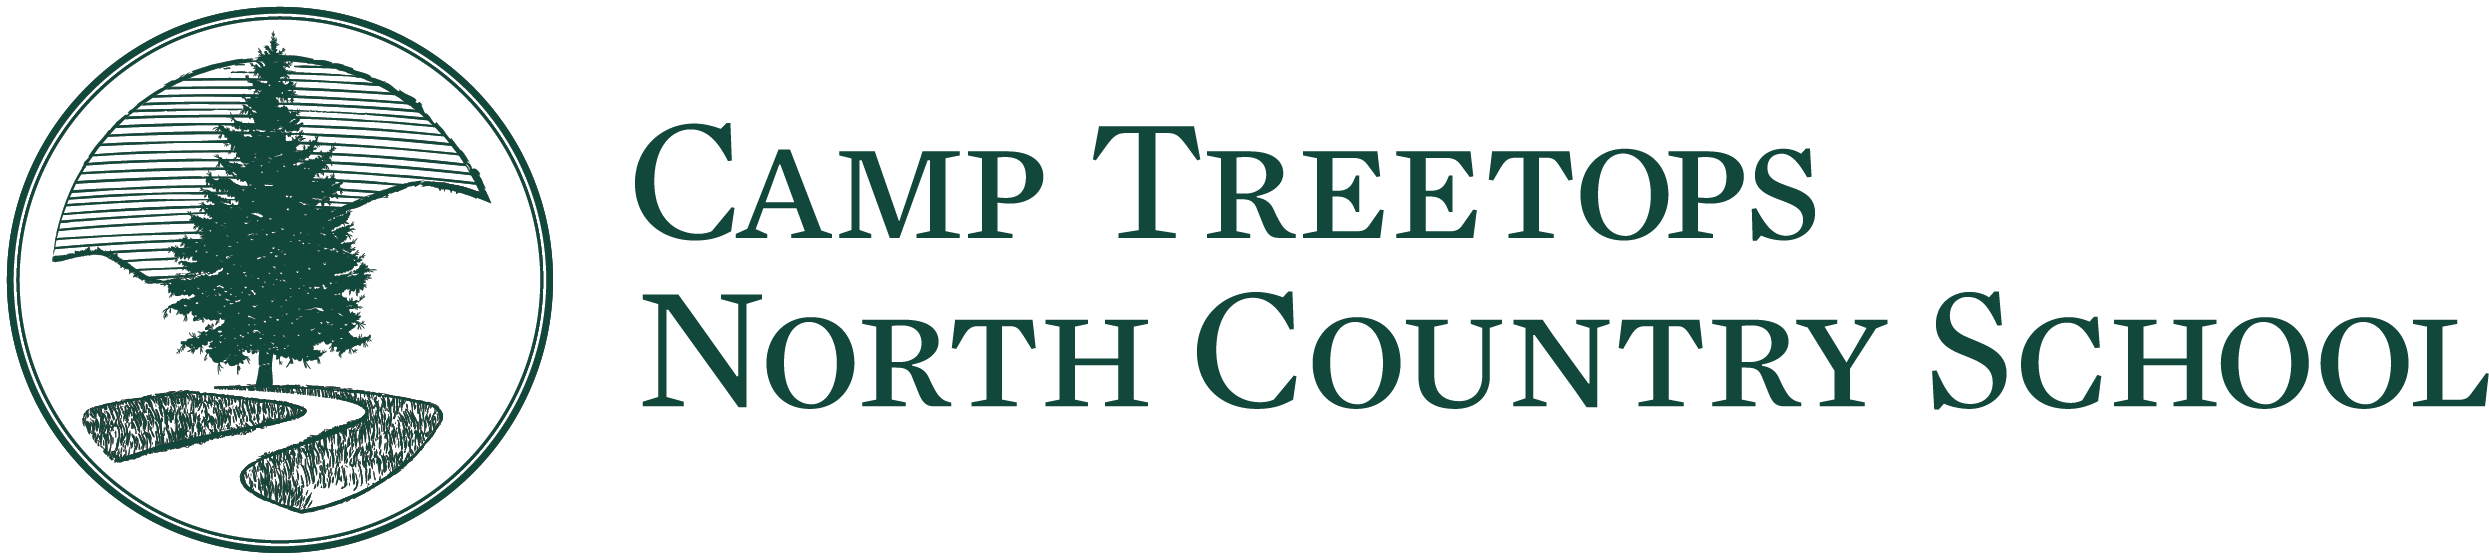 North Country School and Camp Treetops